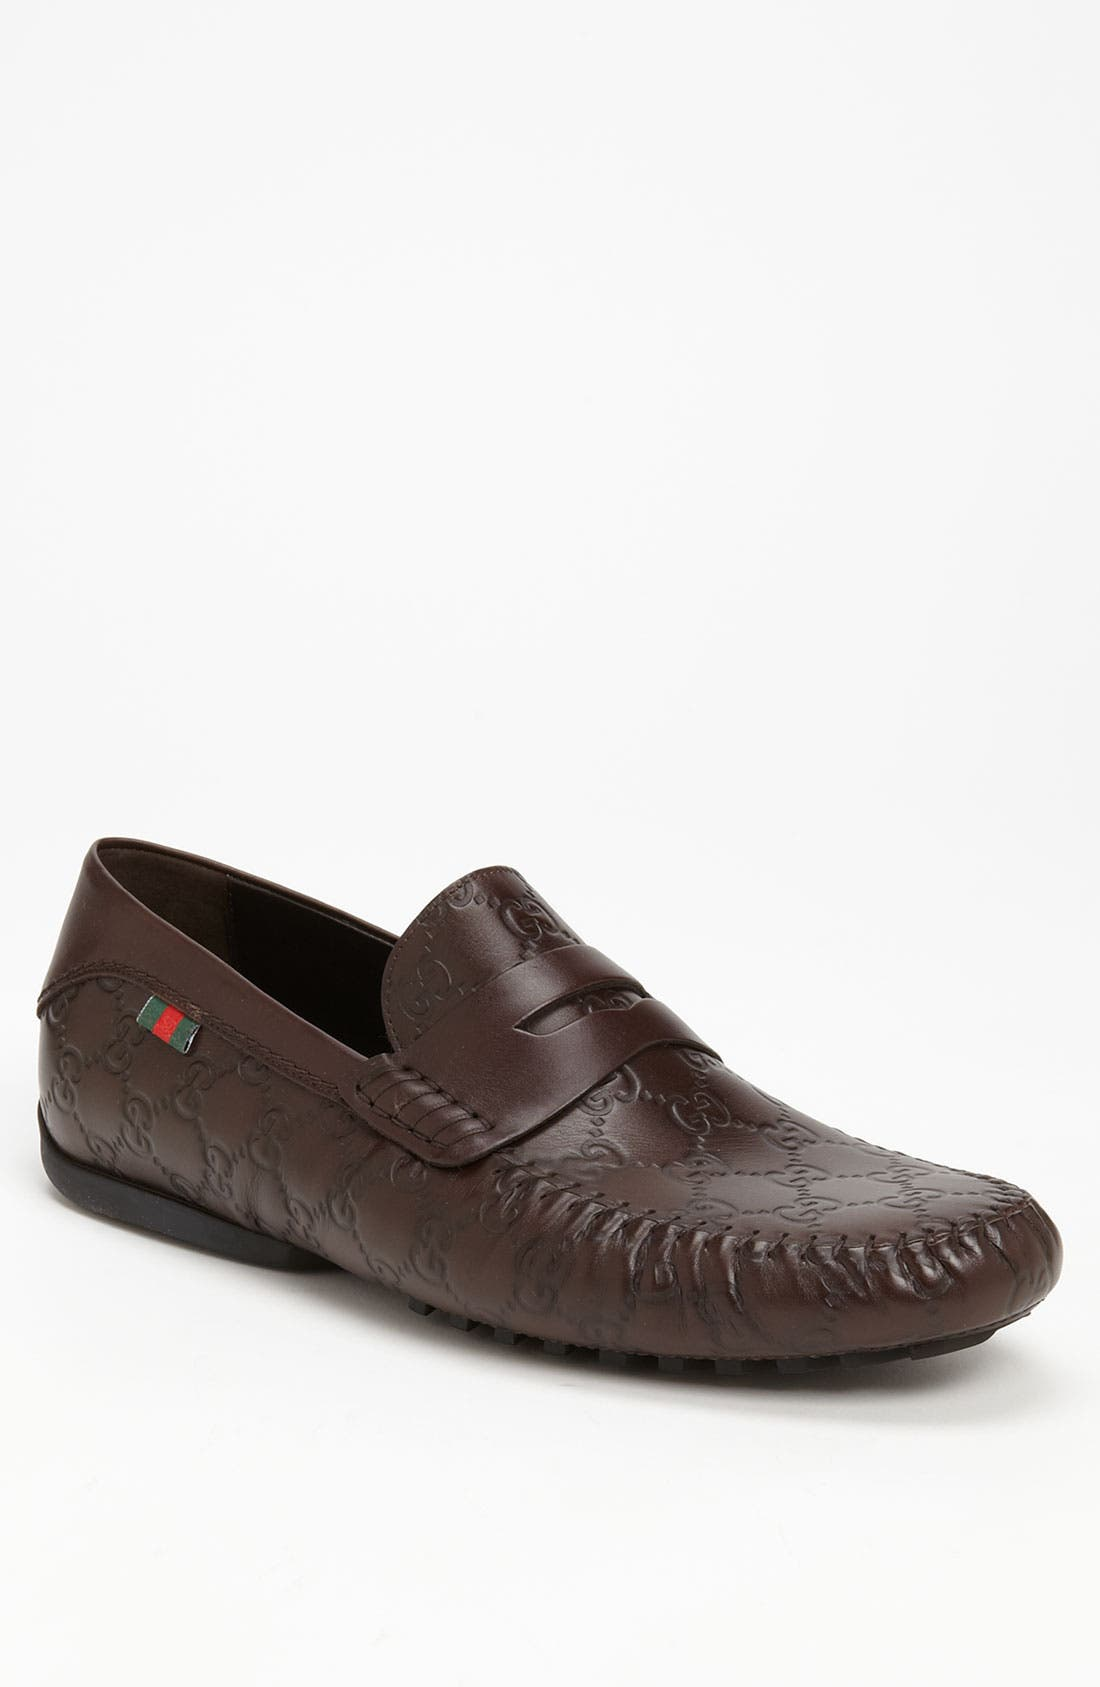 Main Image - Gucci 'San Marino' Driving Shoe